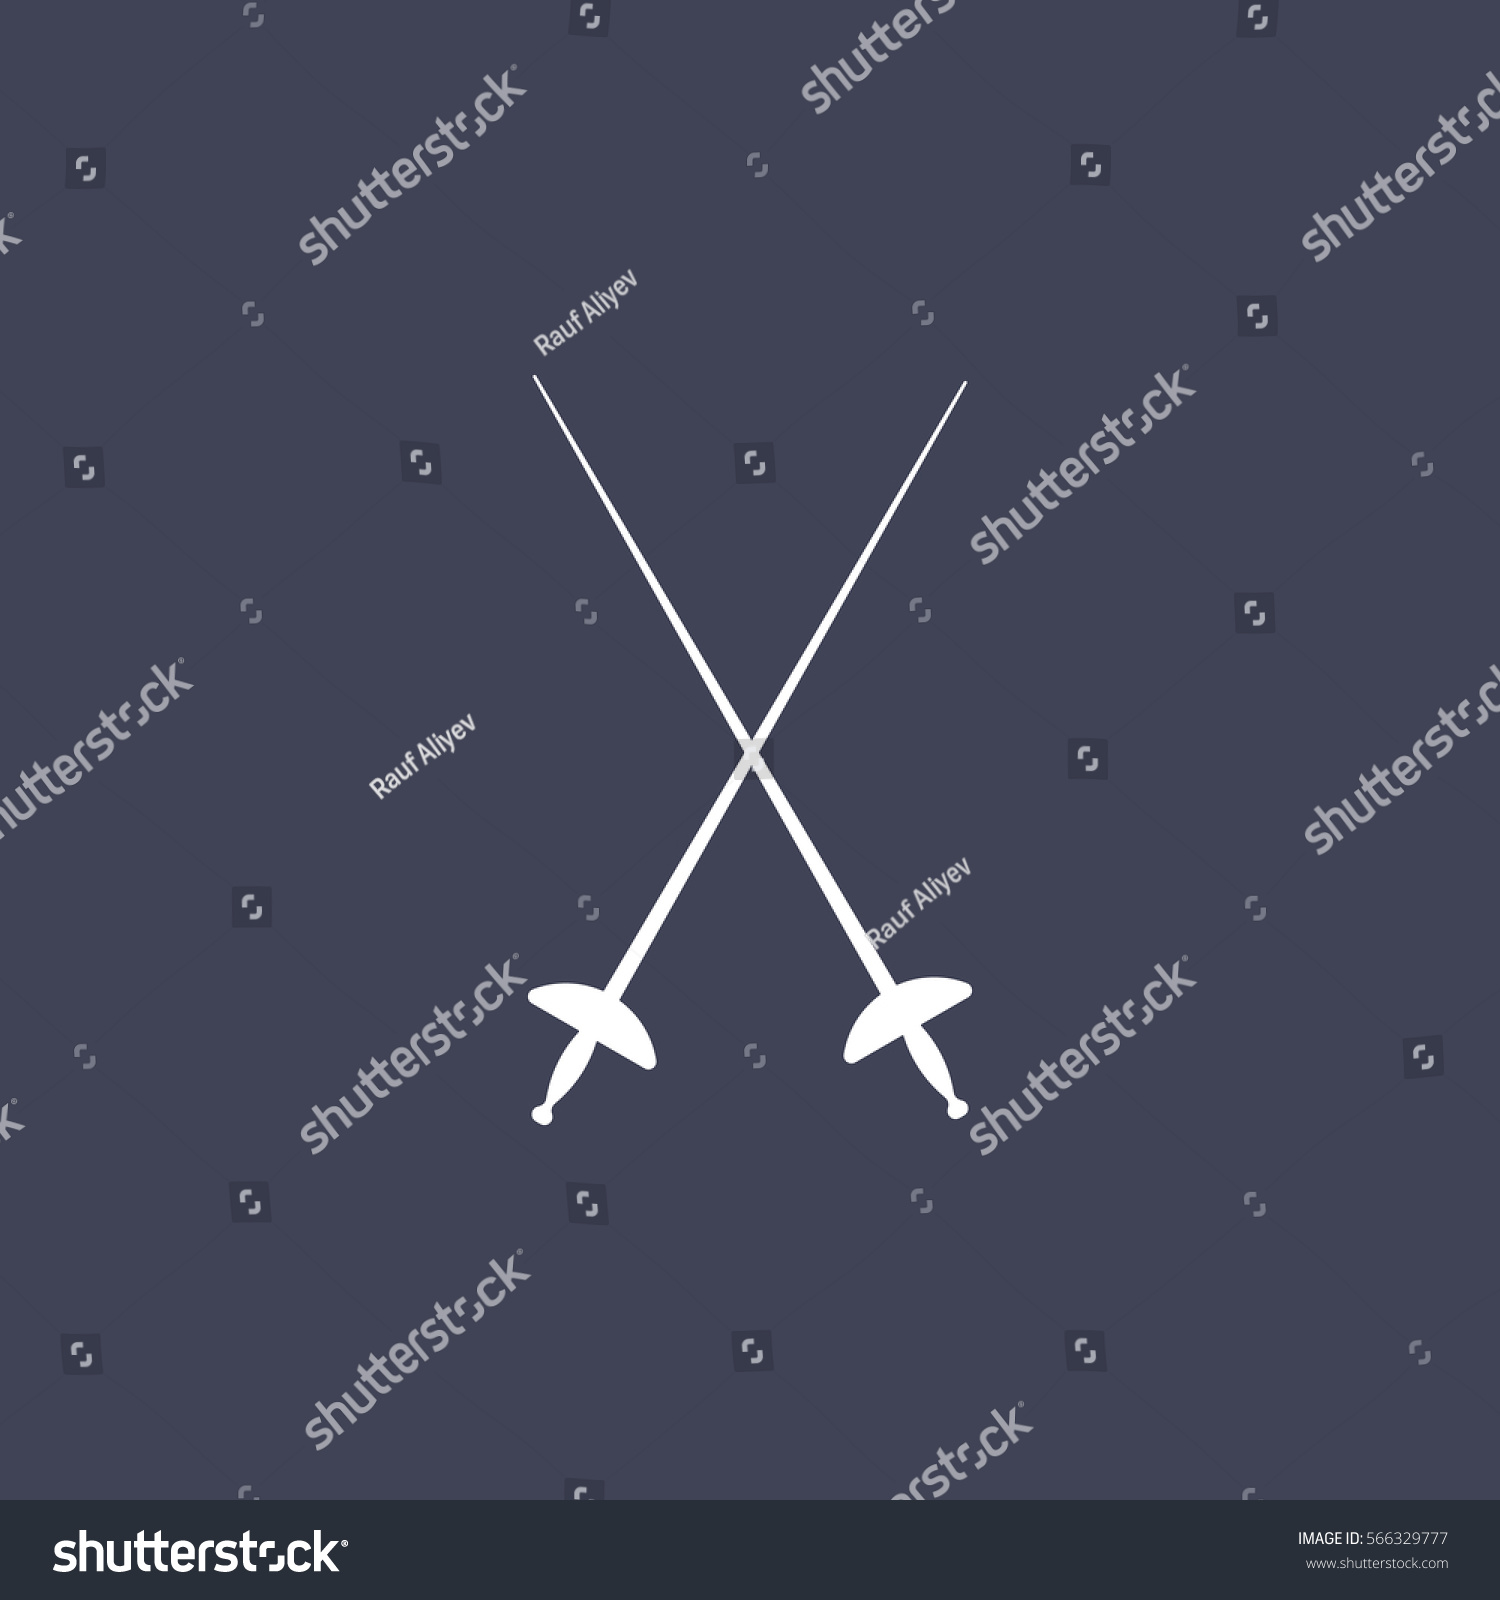 Sword Icon Stock Vector (Royalty Free) 566329777 - Shutterstock